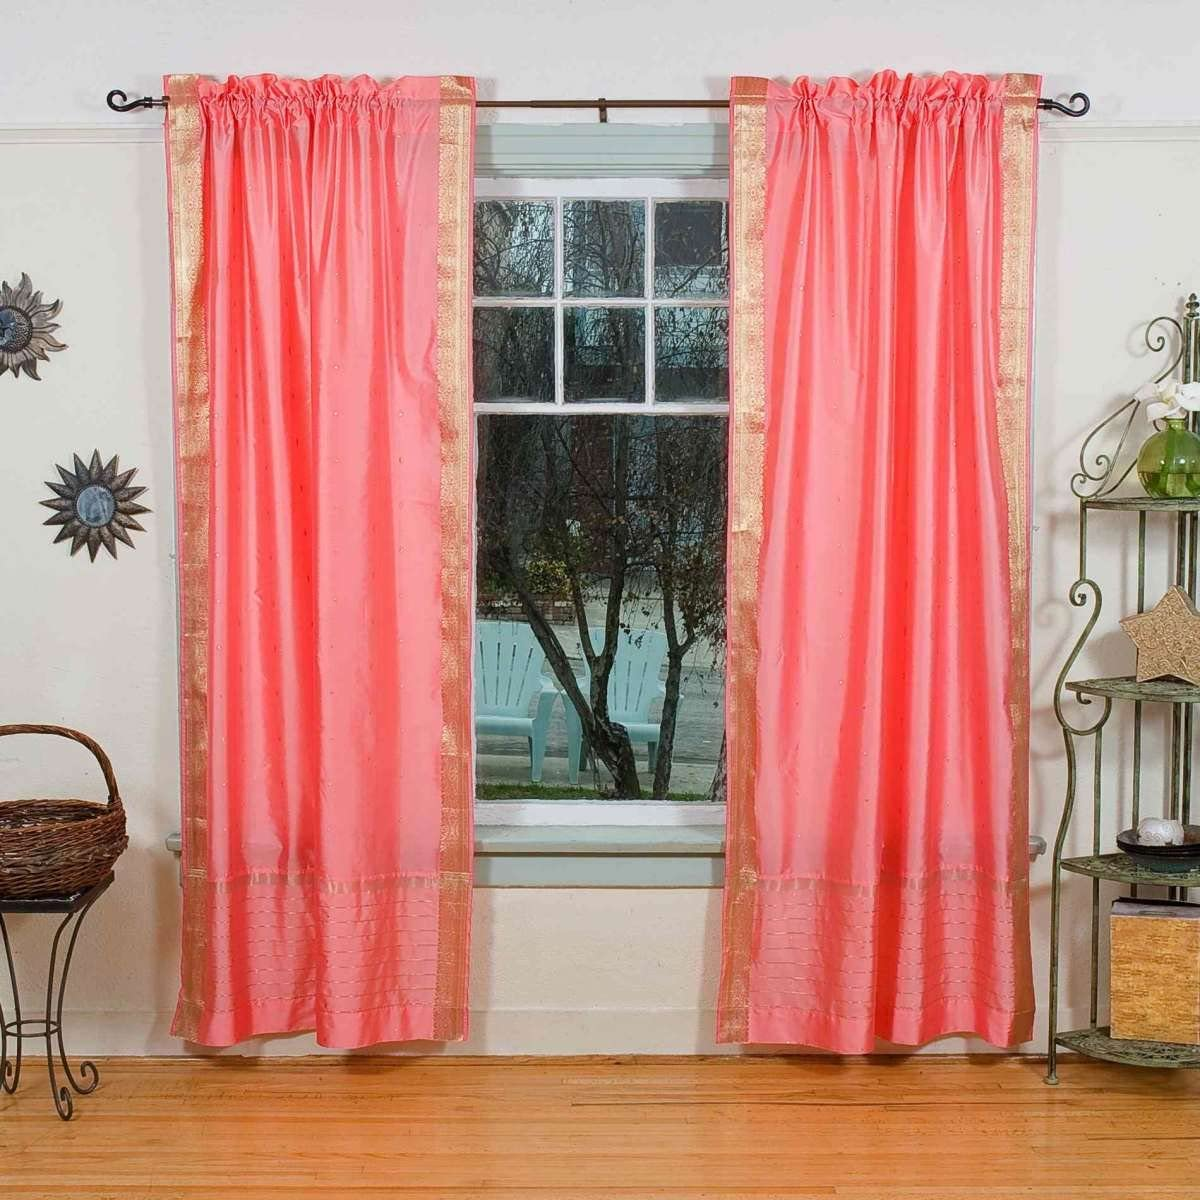 Lined-Pink 84-inch Rod Pocket Sheer Sari Curtain Panel India – Piece